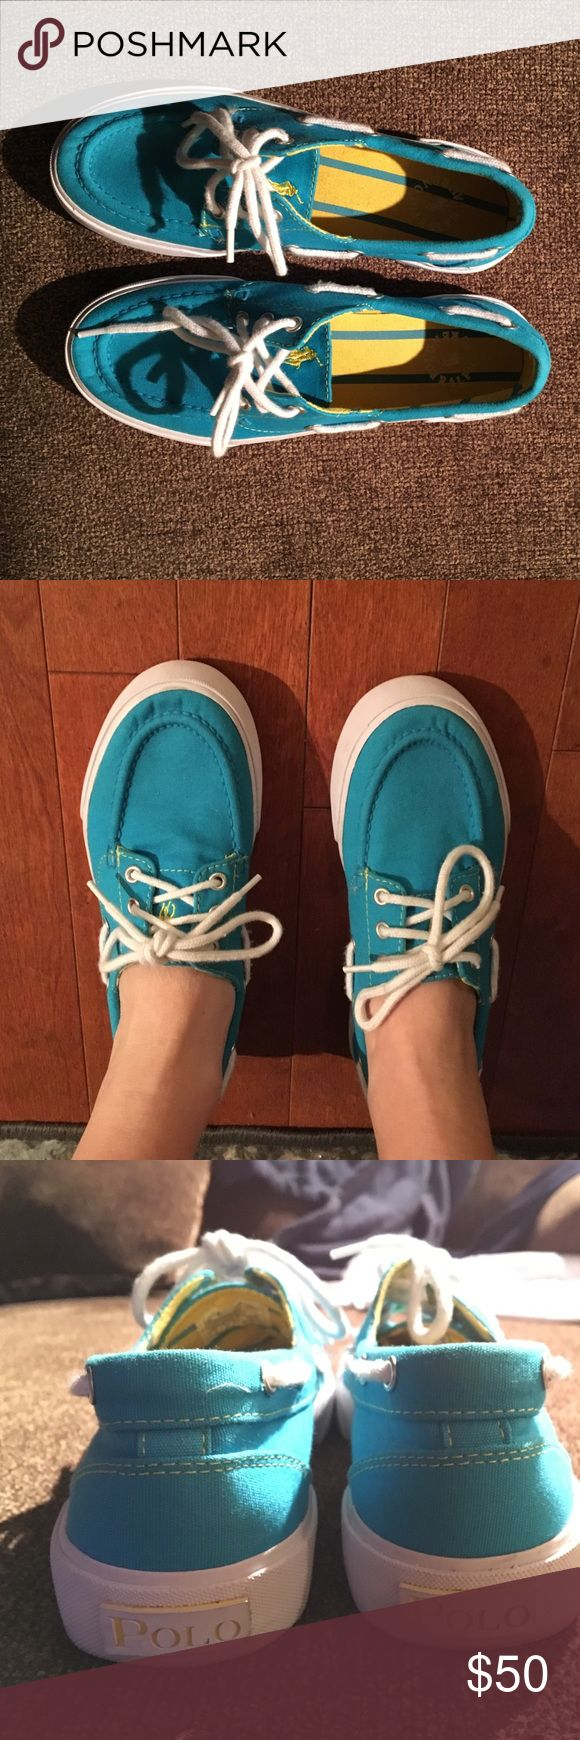 Blue Polo boat shoes Only worn once, in perfect condition! Polo by Ralph Lauren Shoes Sneakers